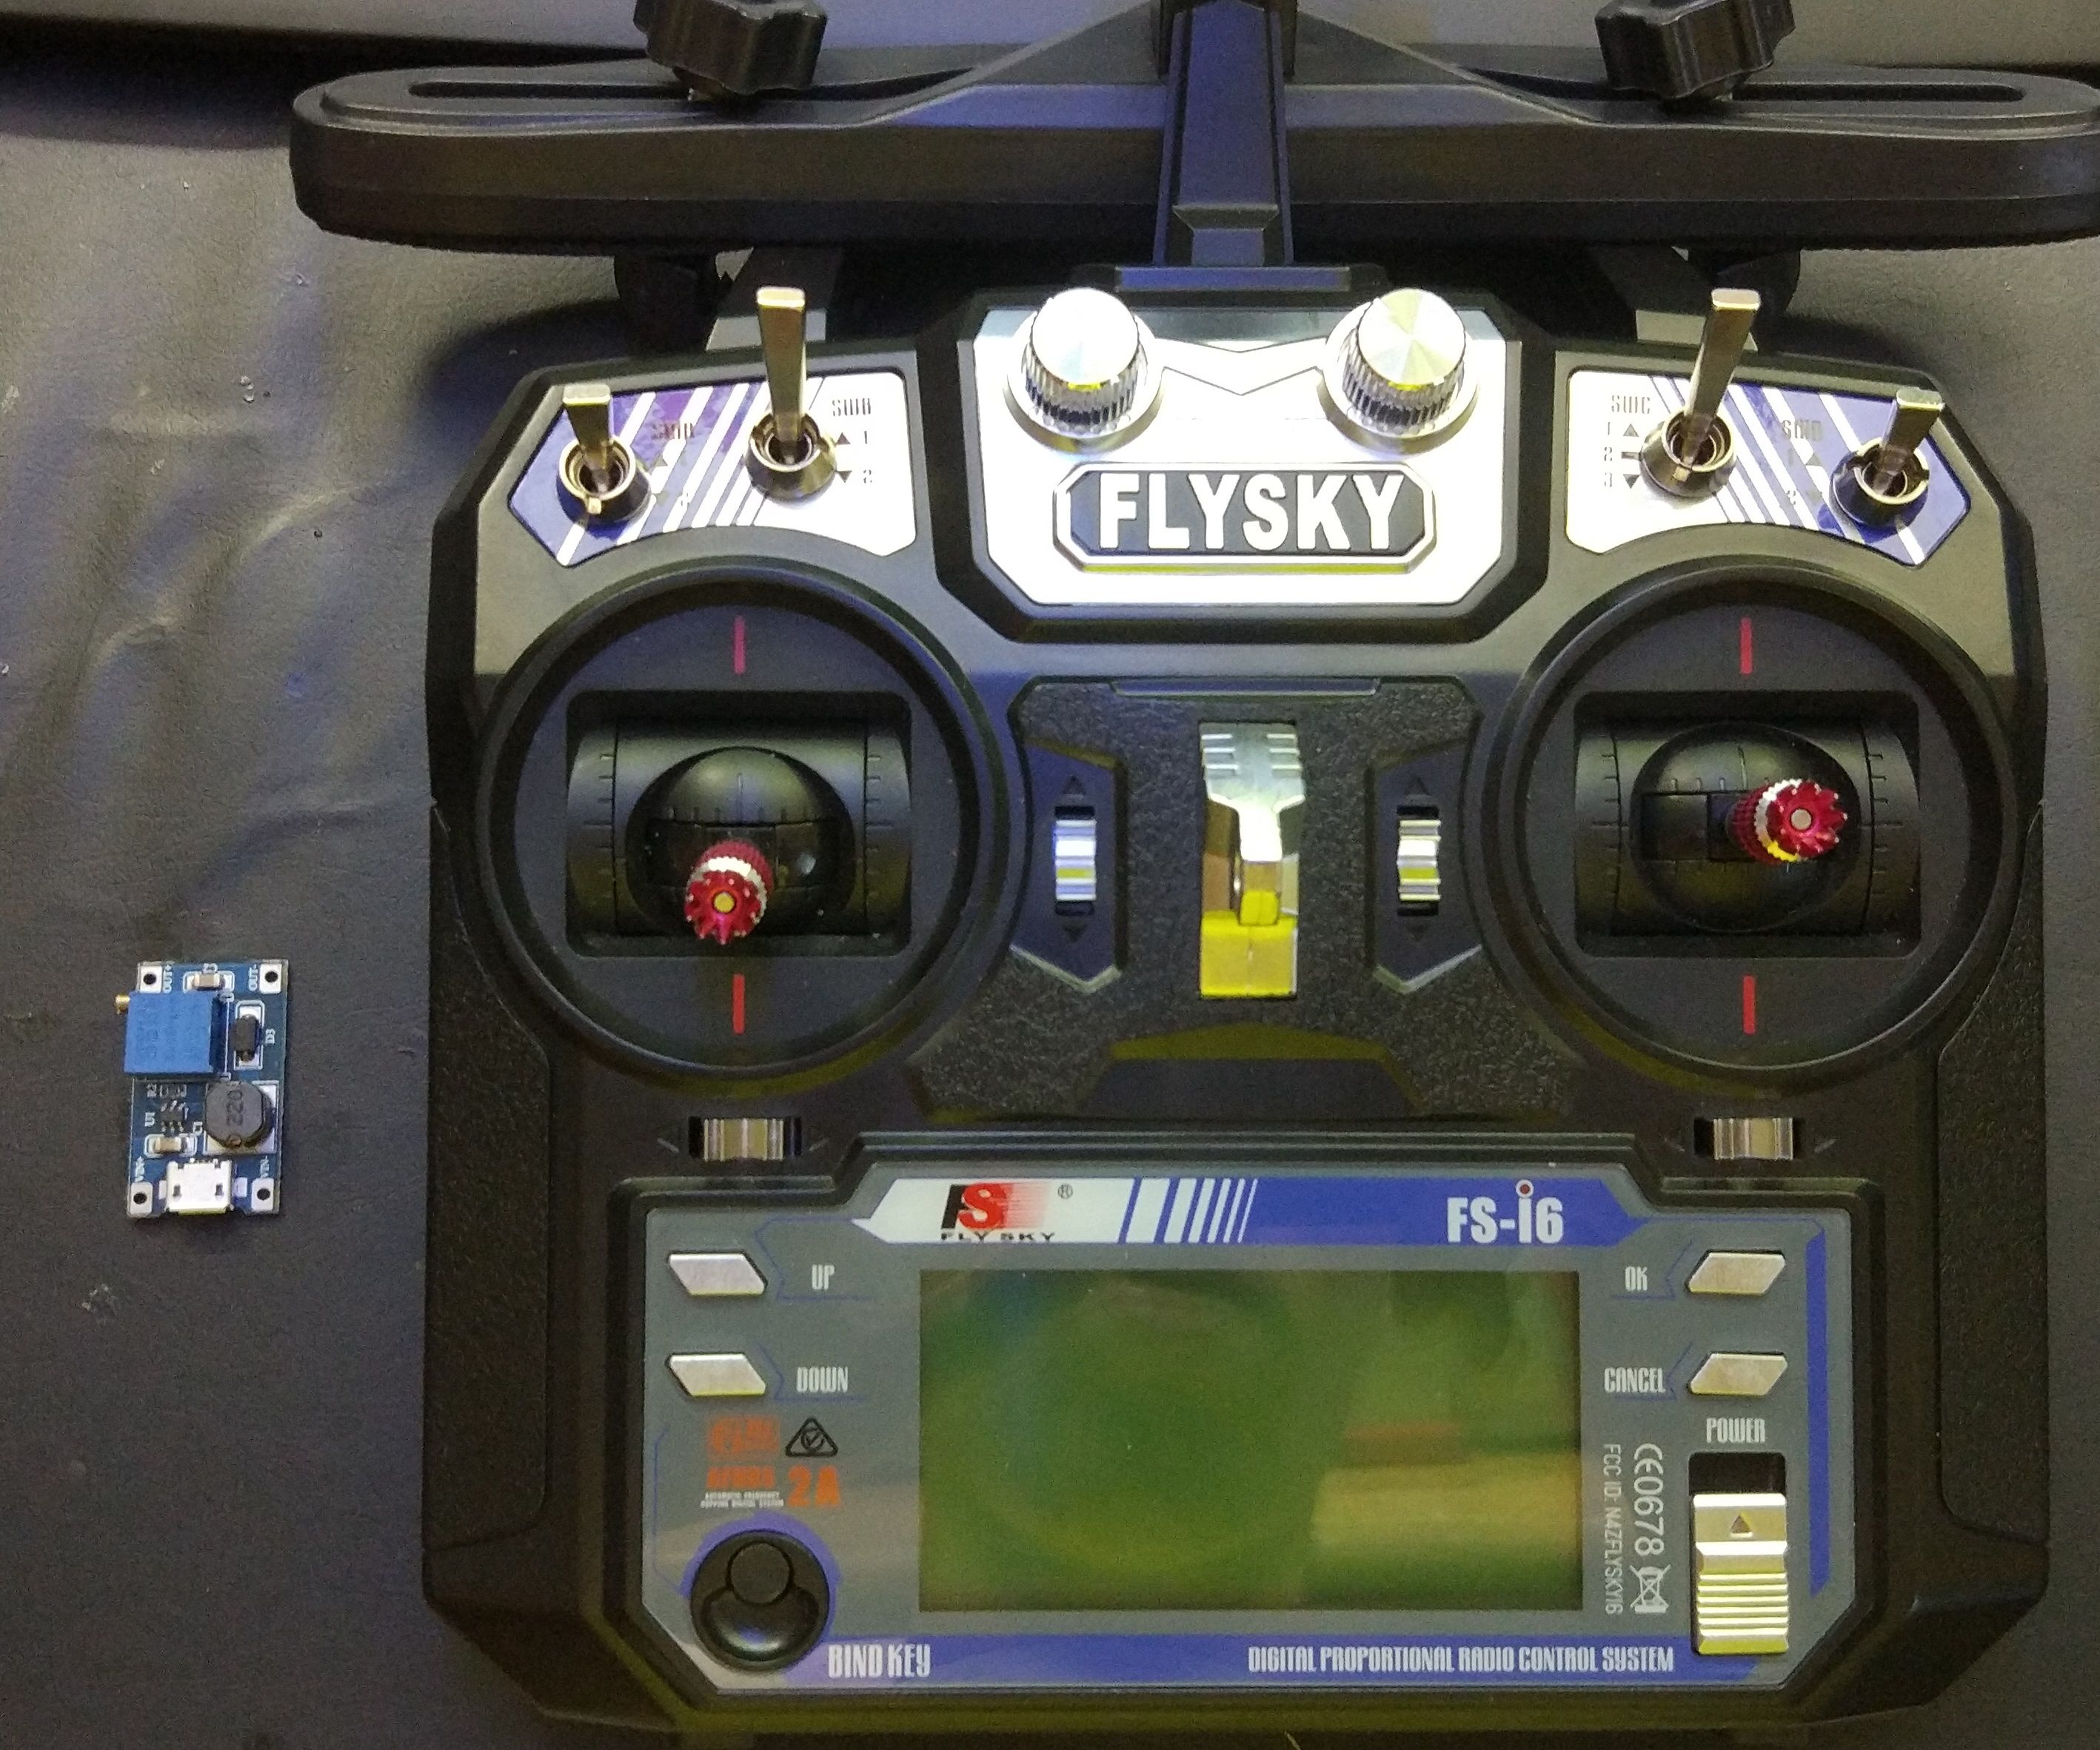 Power Supply the Flysky FS-I6 Controller With Micro USB or 2V to 6V Battery